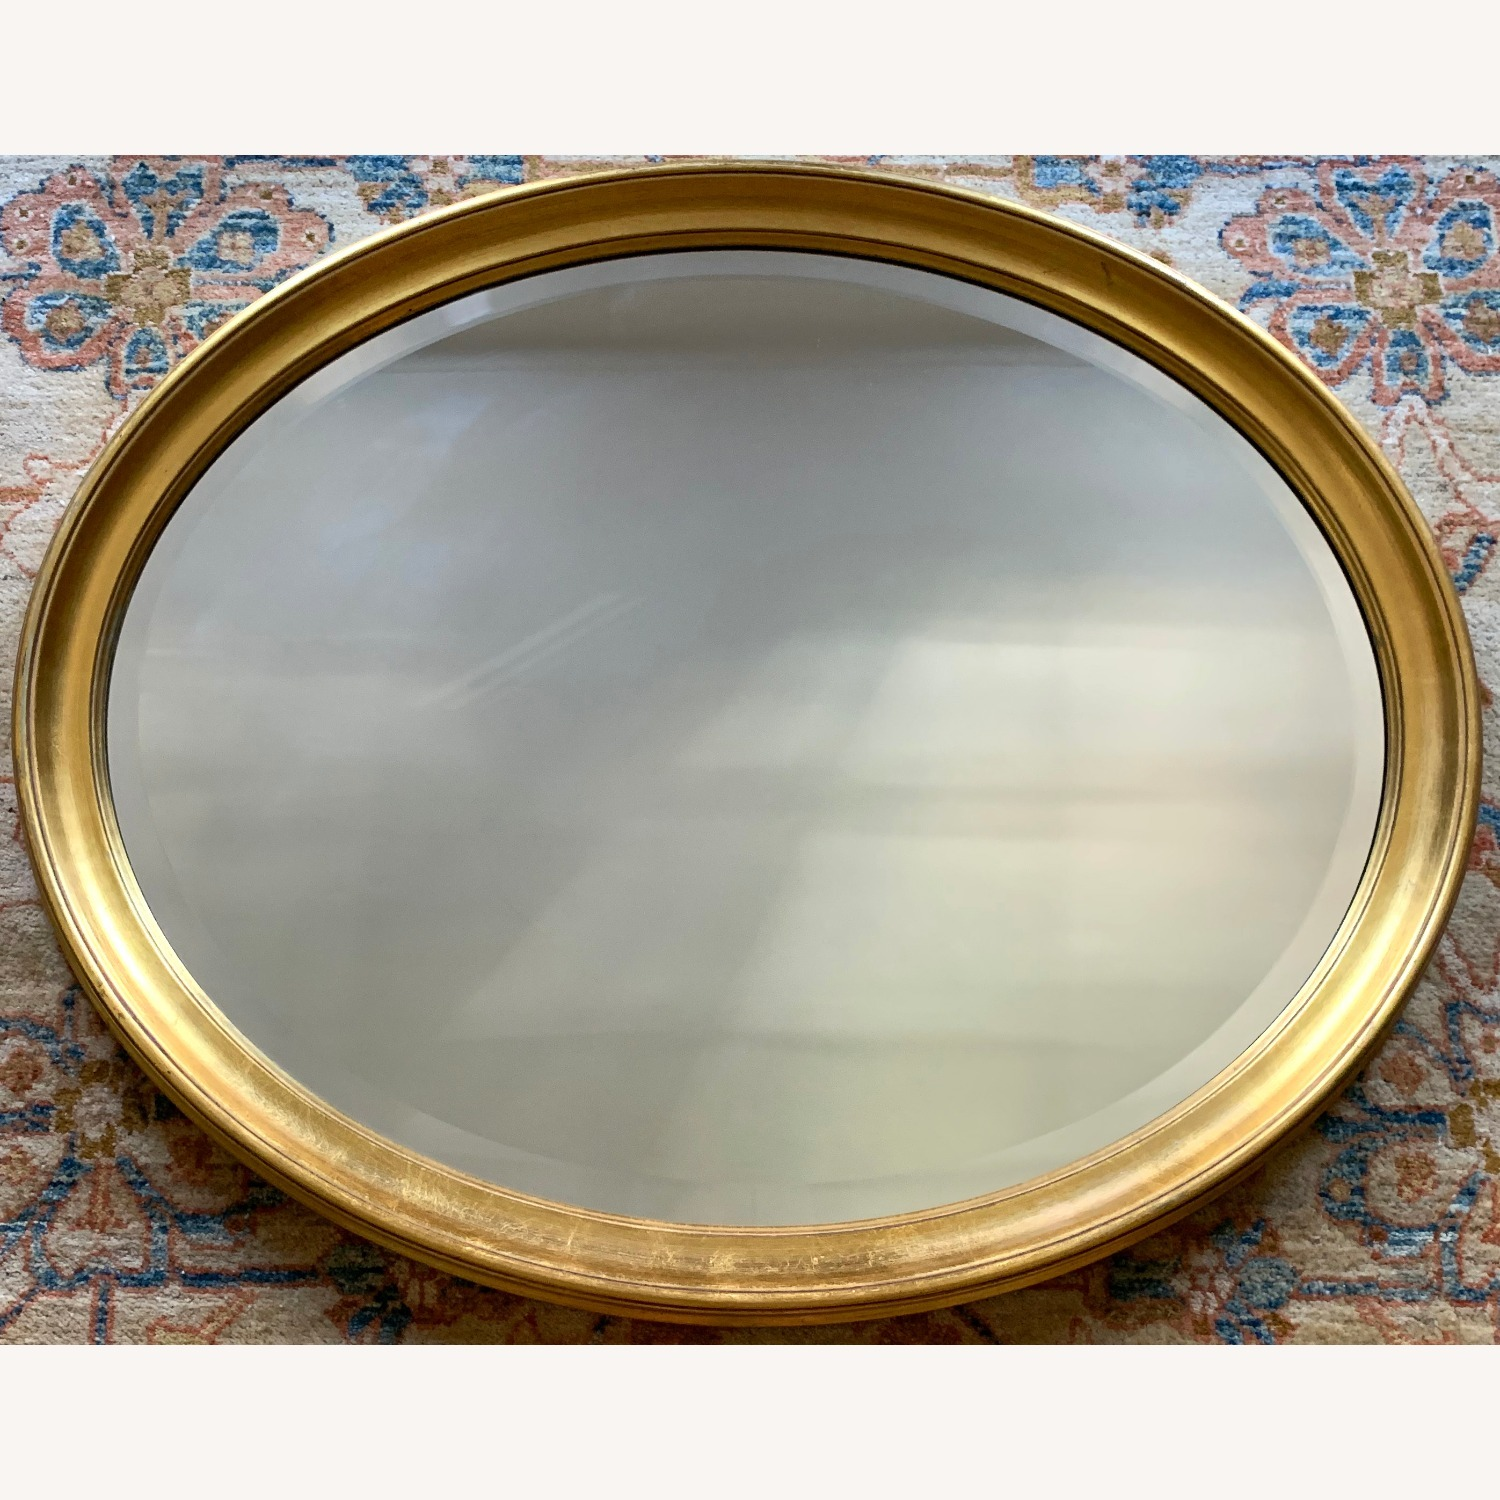 Oval Giltwood Frame with Beveled Mirror - image-2